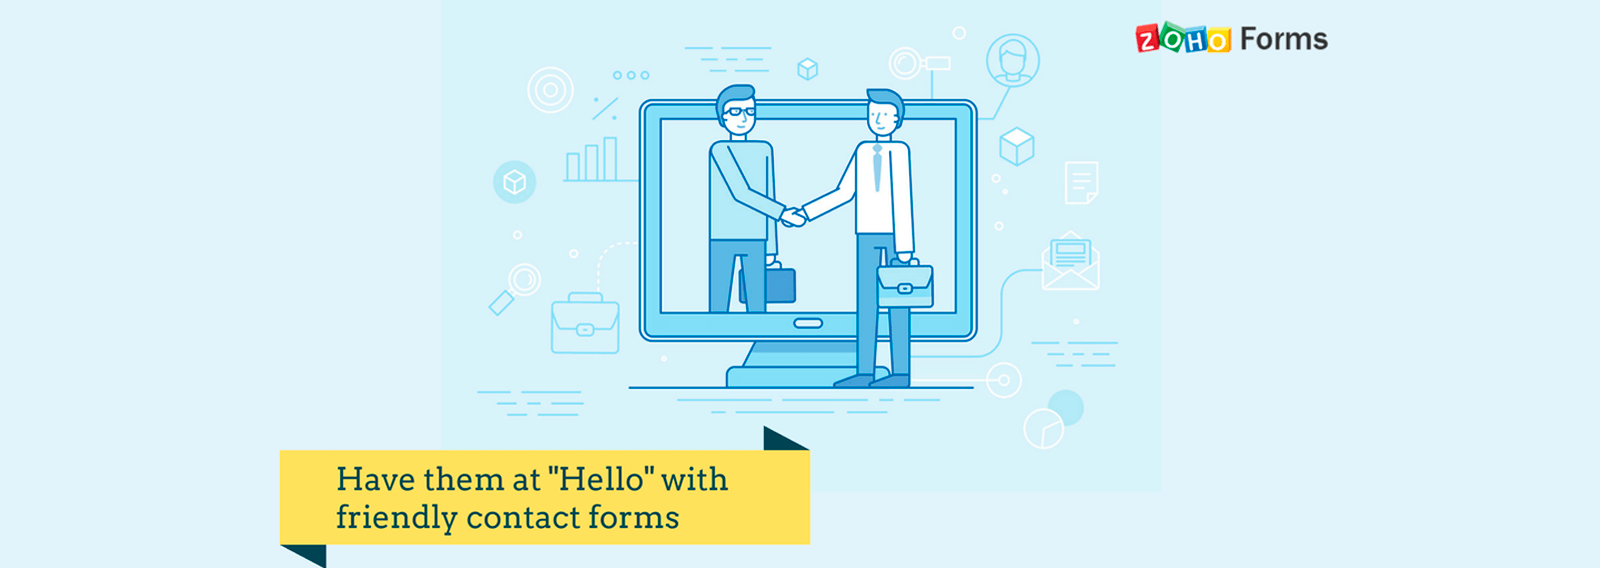 Online Forms 101: Creating contact forms that mean business